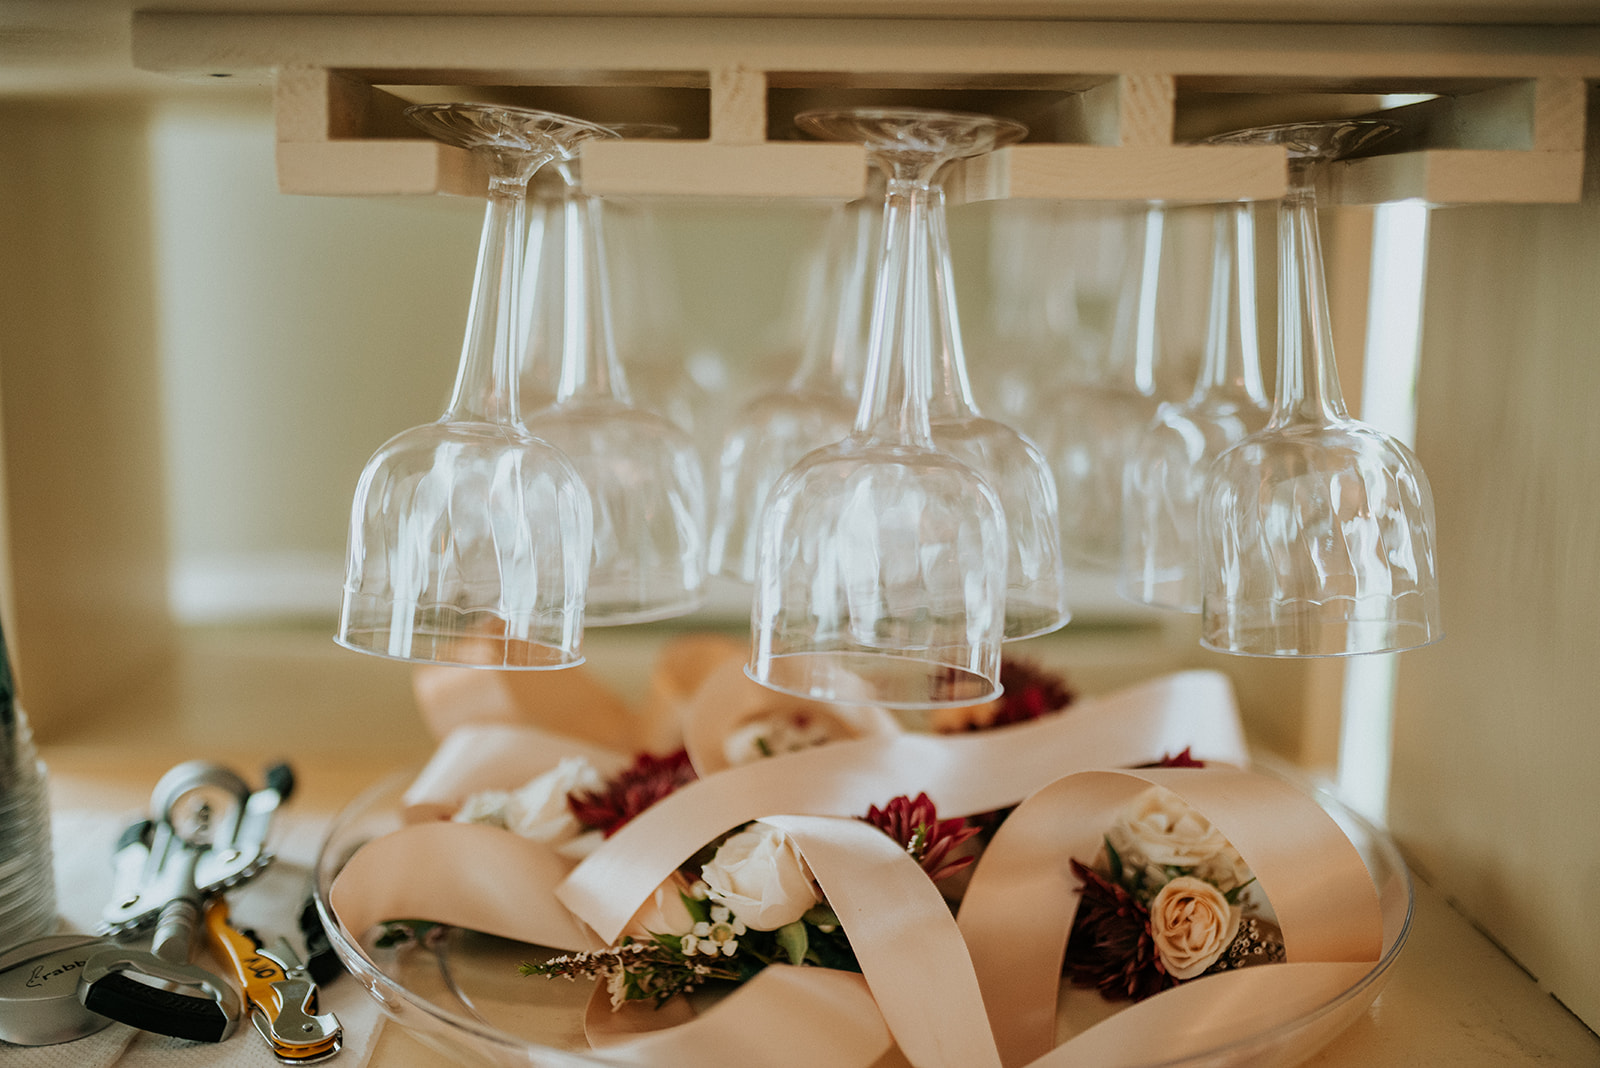 overthevineswisconsinwedding_0030.jpg